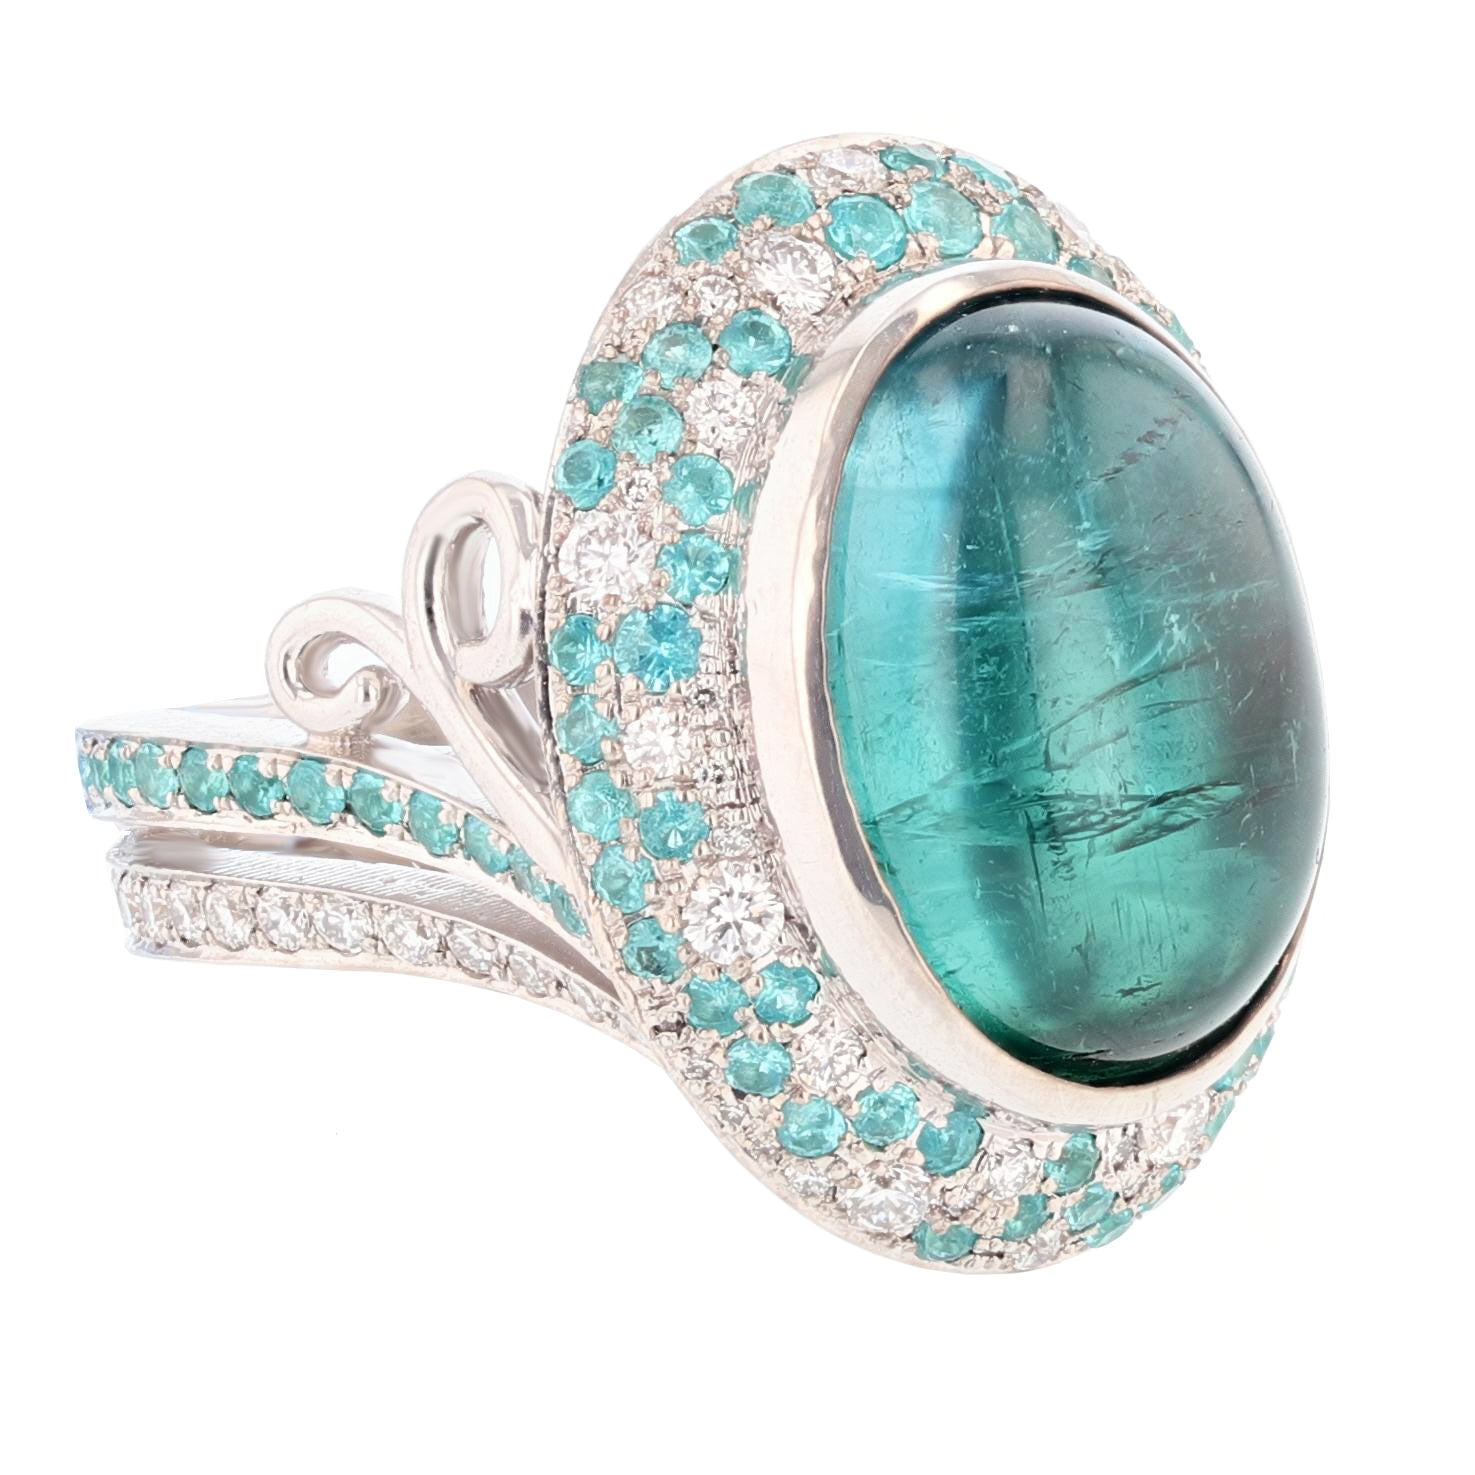 Cabachon Blue Tourmaline and Diamond Ring - Nazarelle